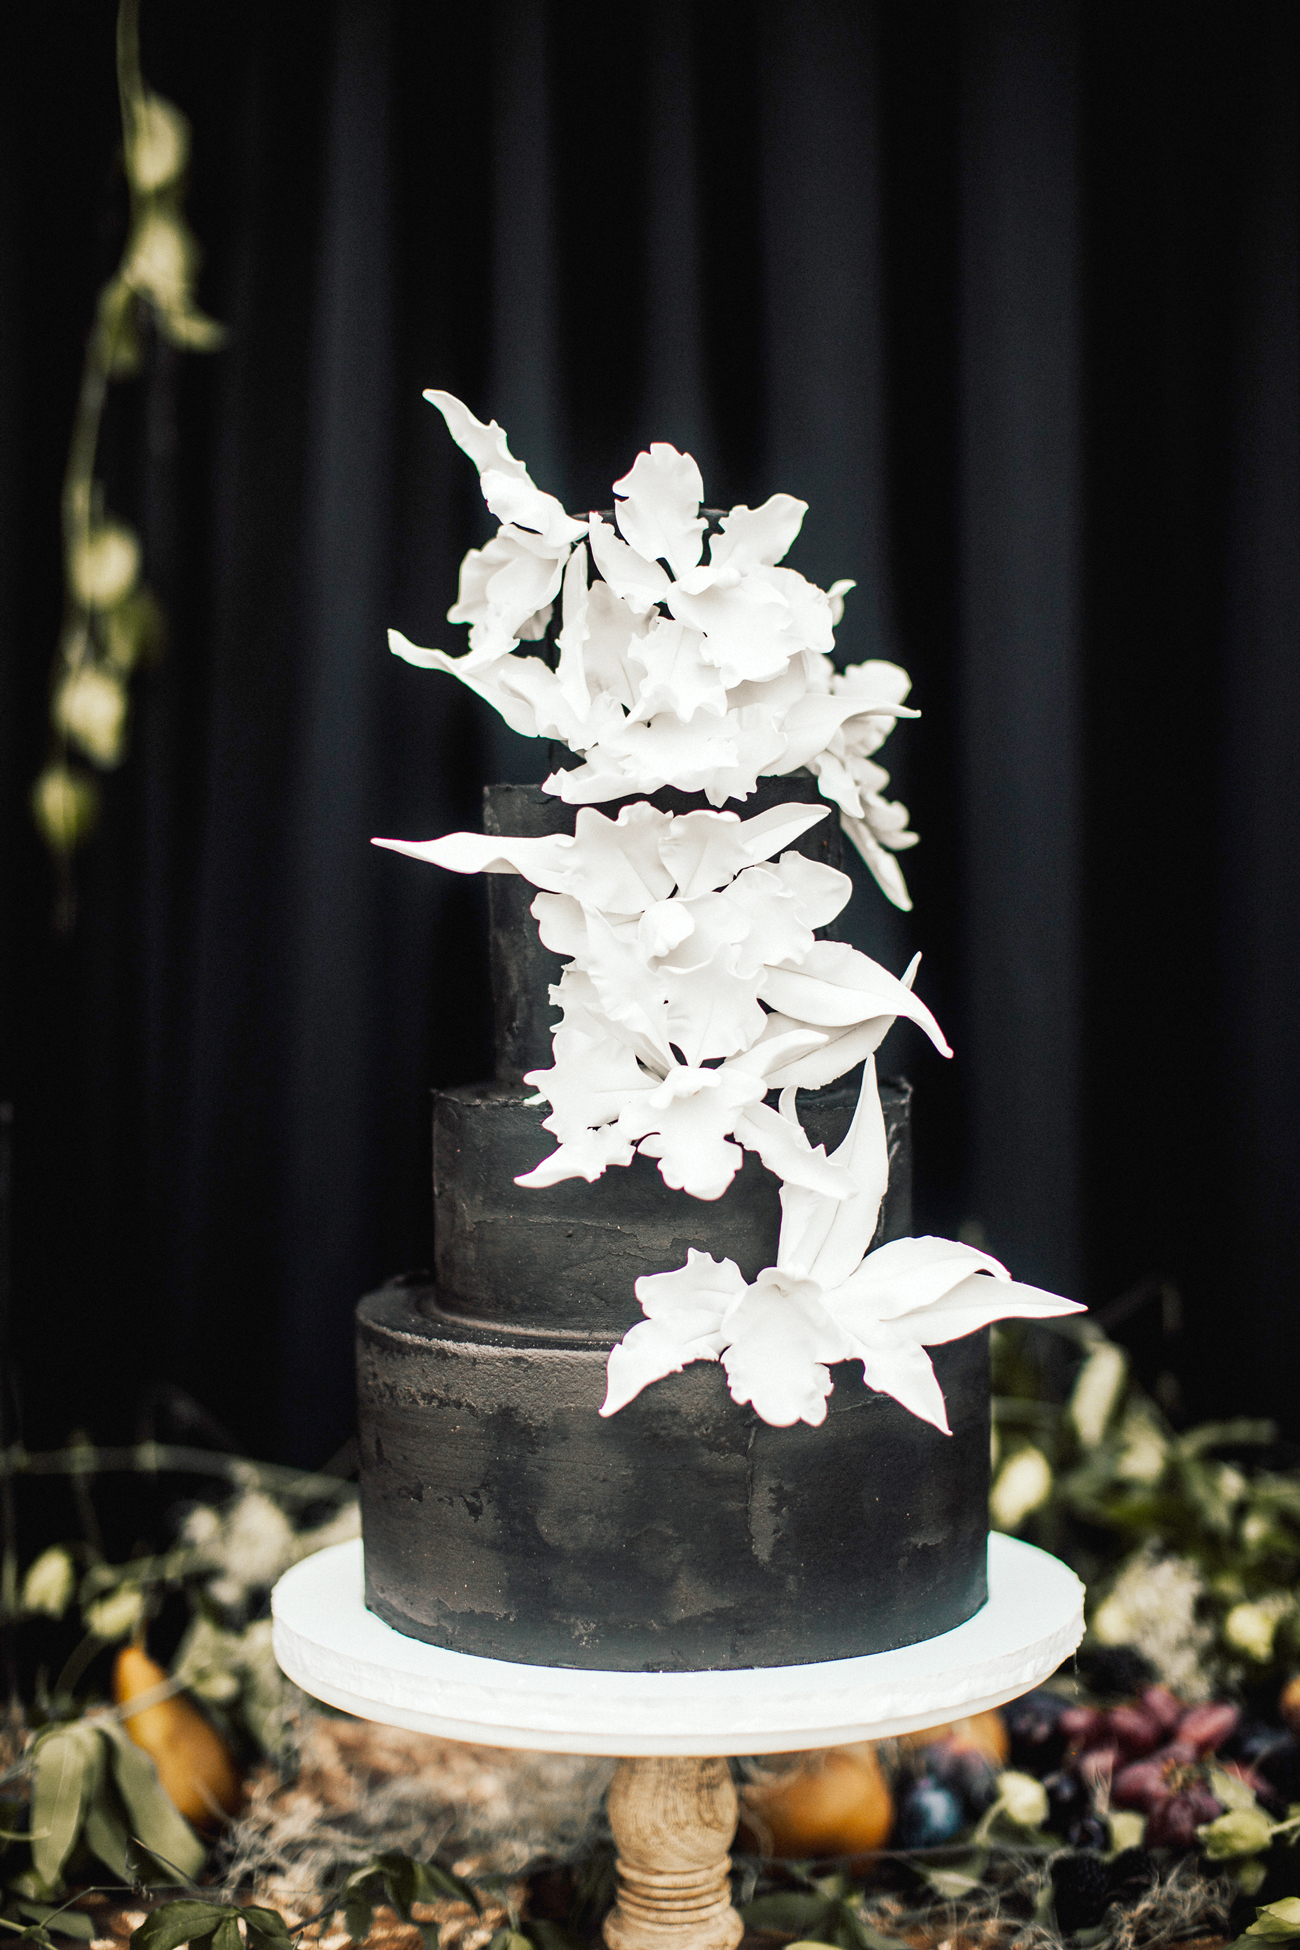 four tiered black frosted wedding cake with white floral accents